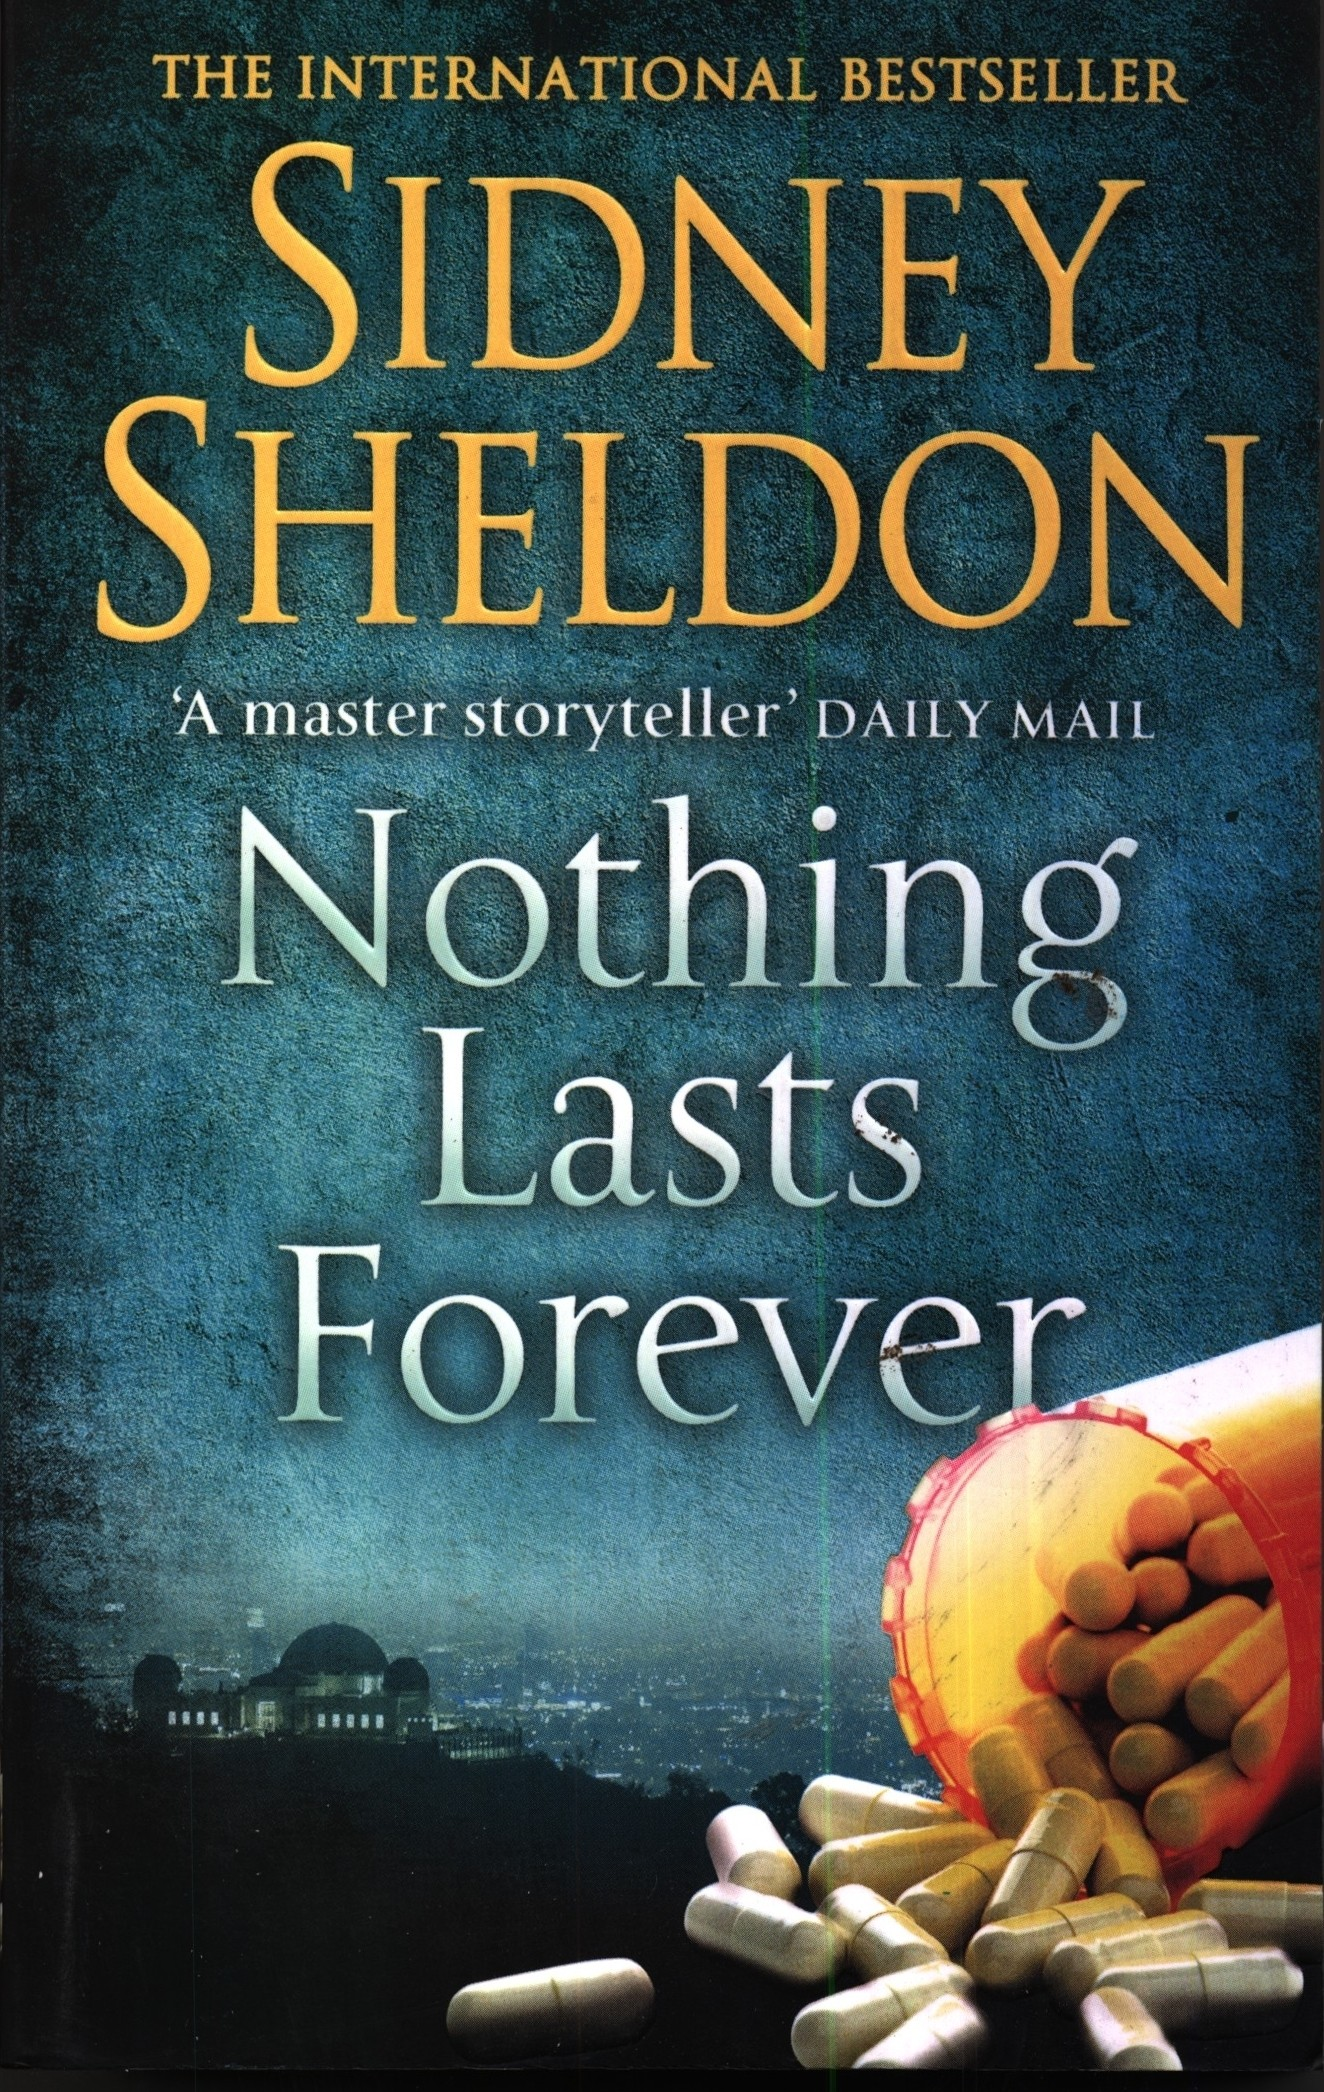 a book review on sidney sheldons Hello everyone so here i am back with a book review that i read about a week ago but i haven't been able to review it due to my current depressing state but i would like to thank all who appeared with such generous and helpful comments on my last post and showed faith in.